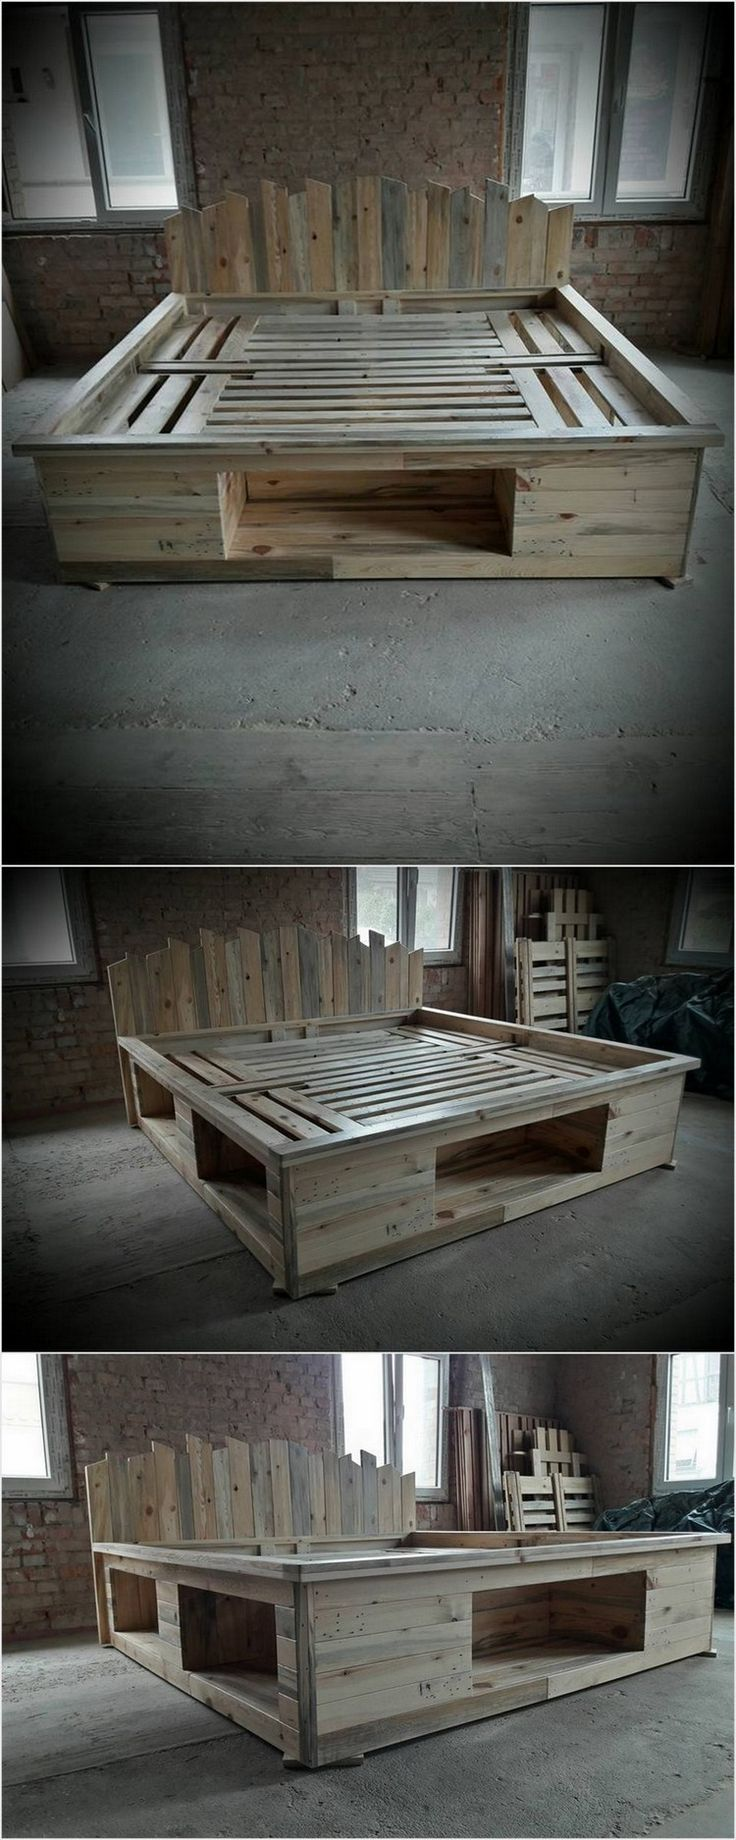 Price Worthy Awesome Shipping Pallet Recycling Ideas | Camas, Palets ...